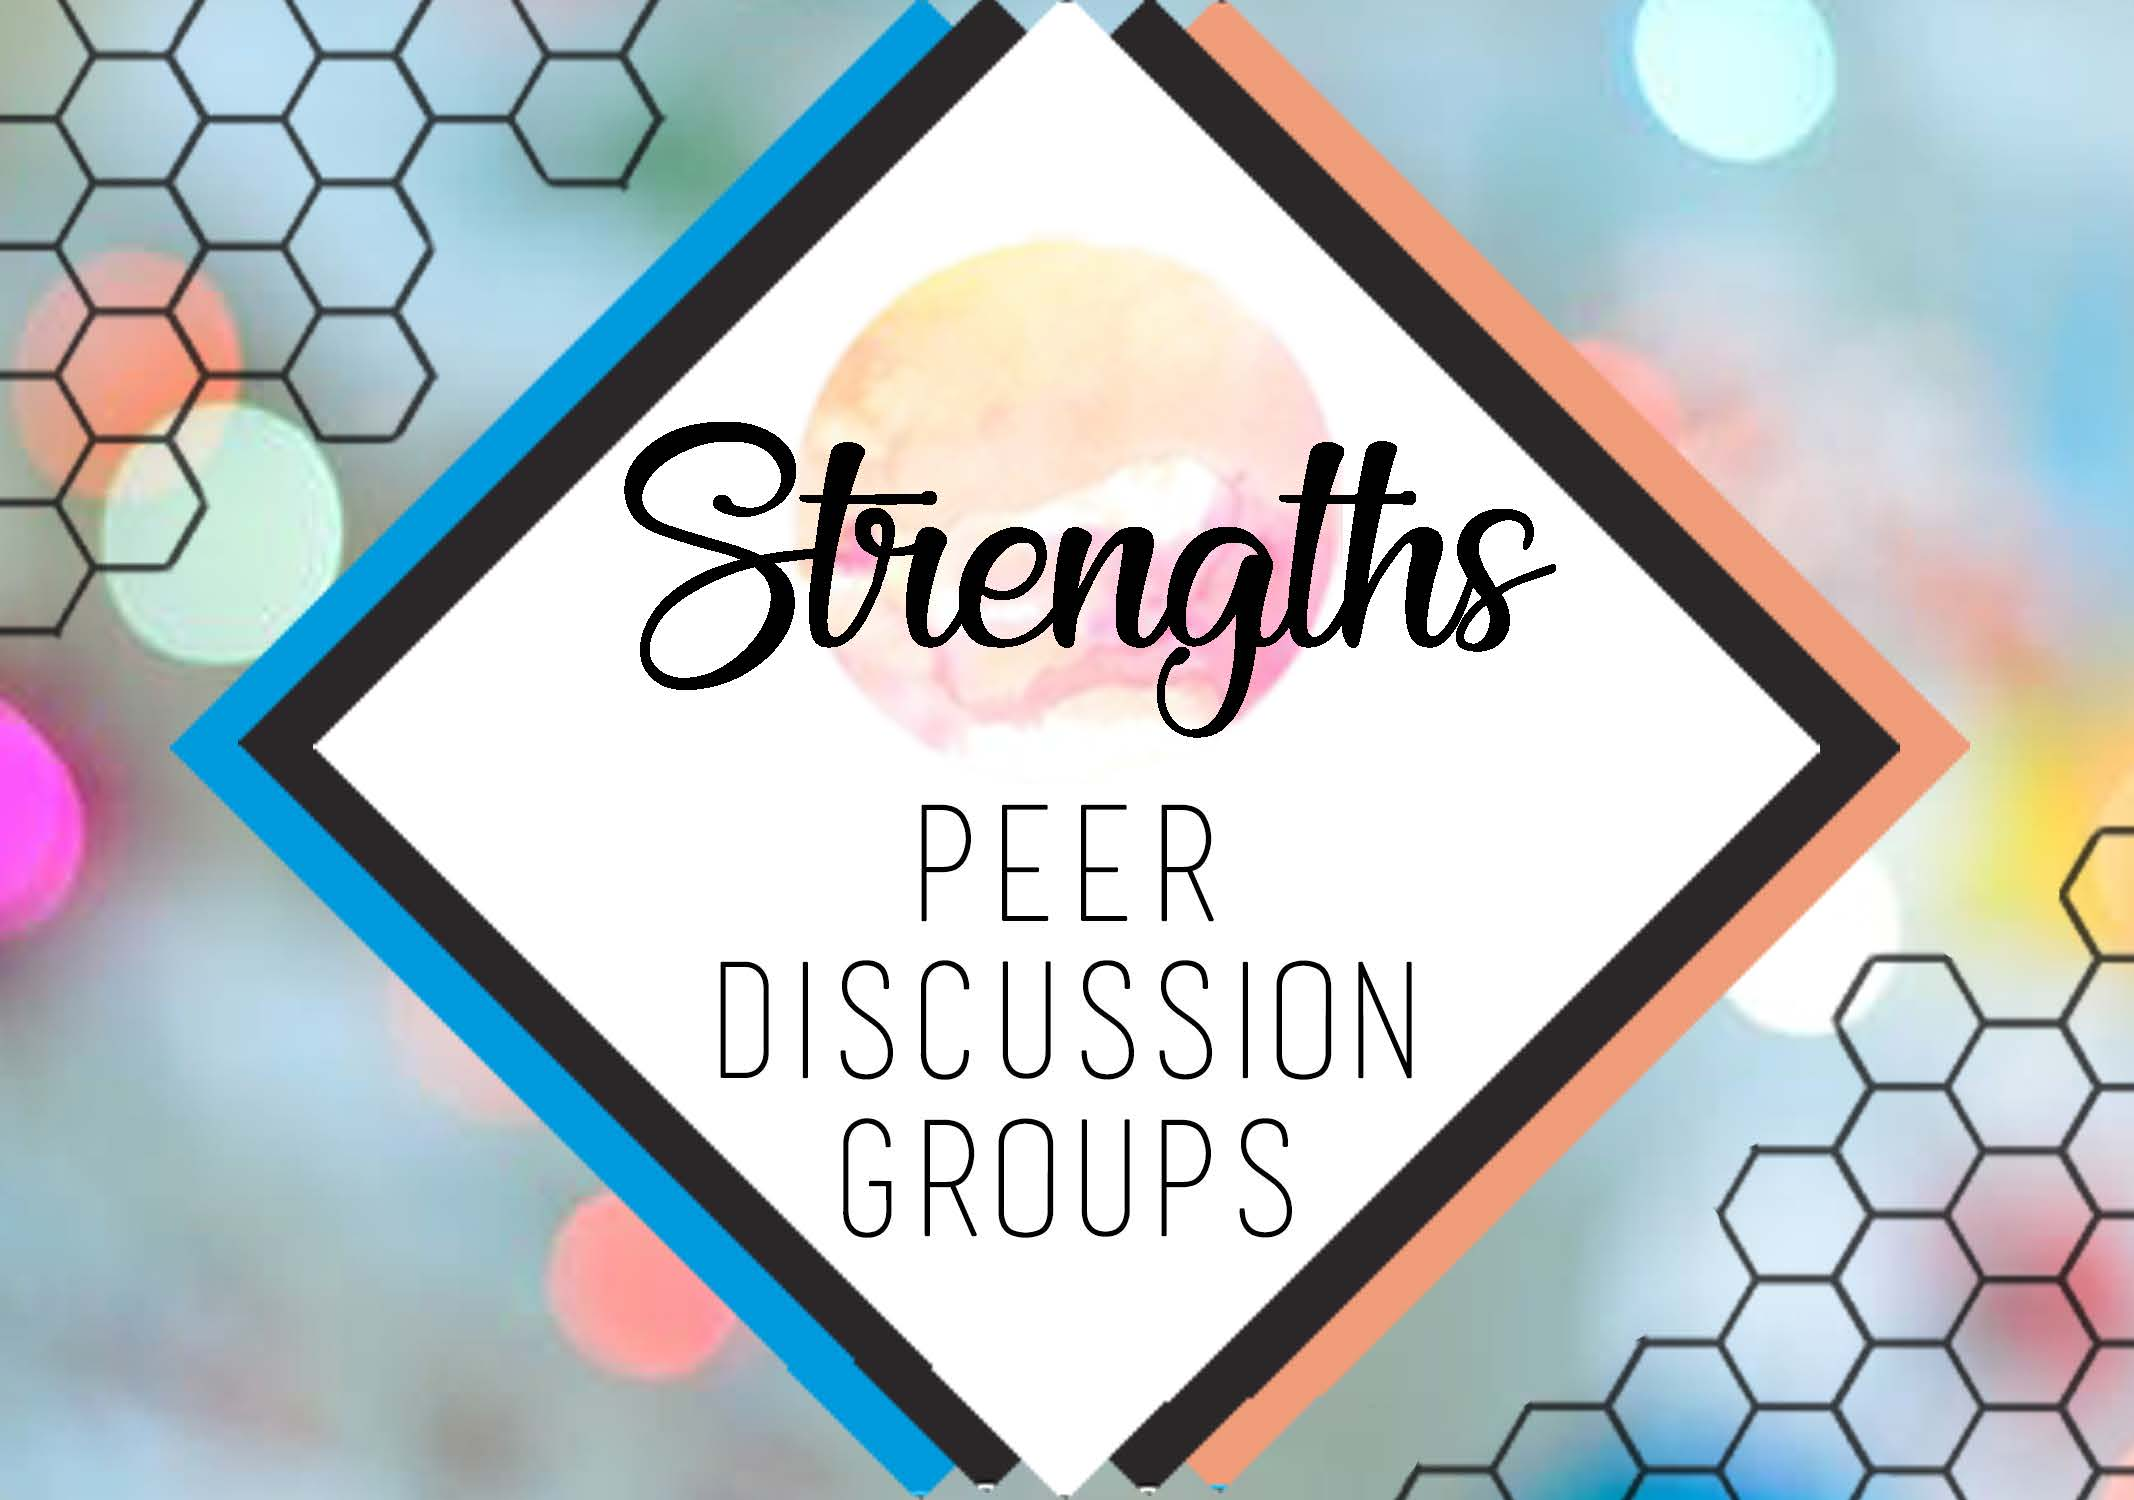 strengths peer discussion groups